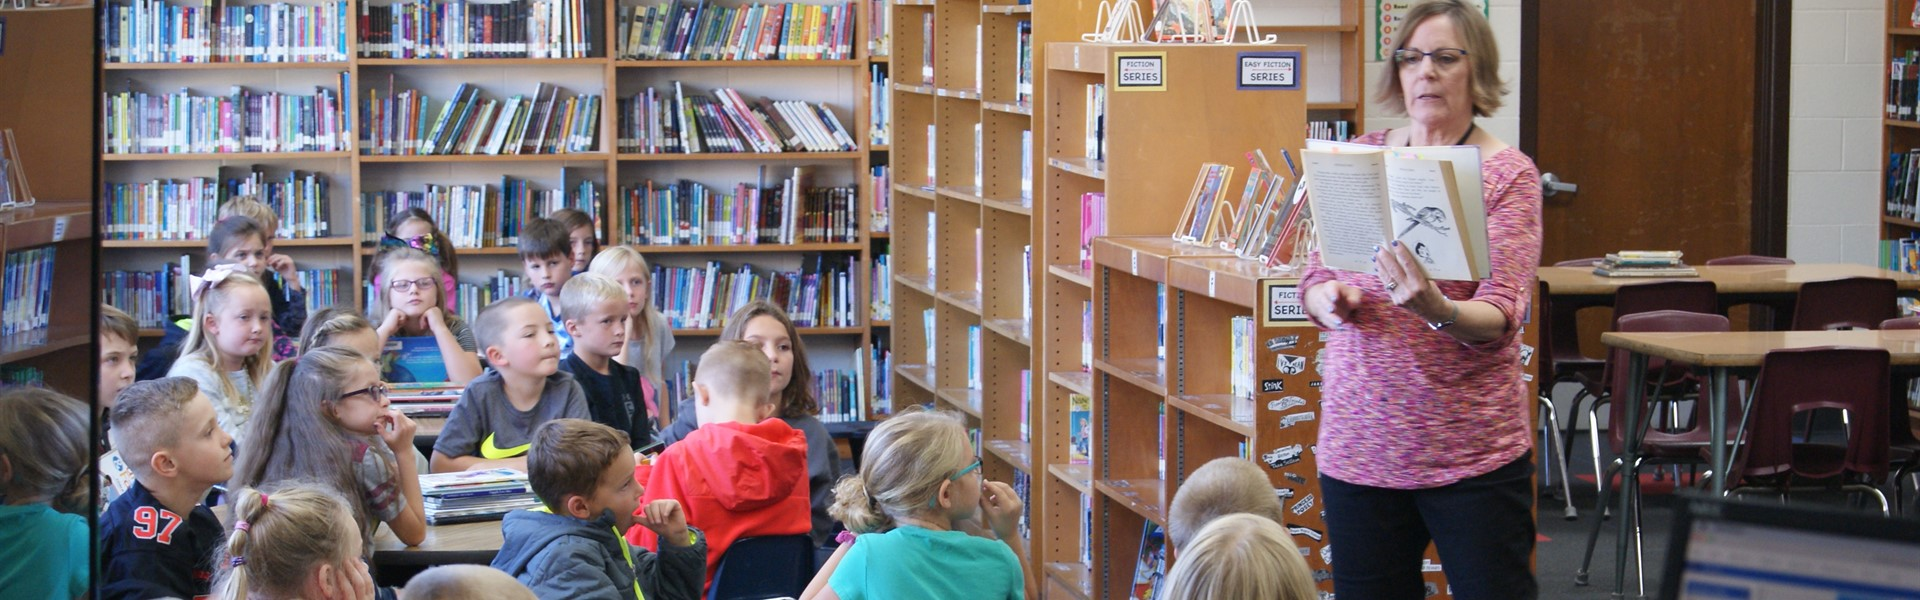 Librarian reads book to 2nd grade classroom in the library